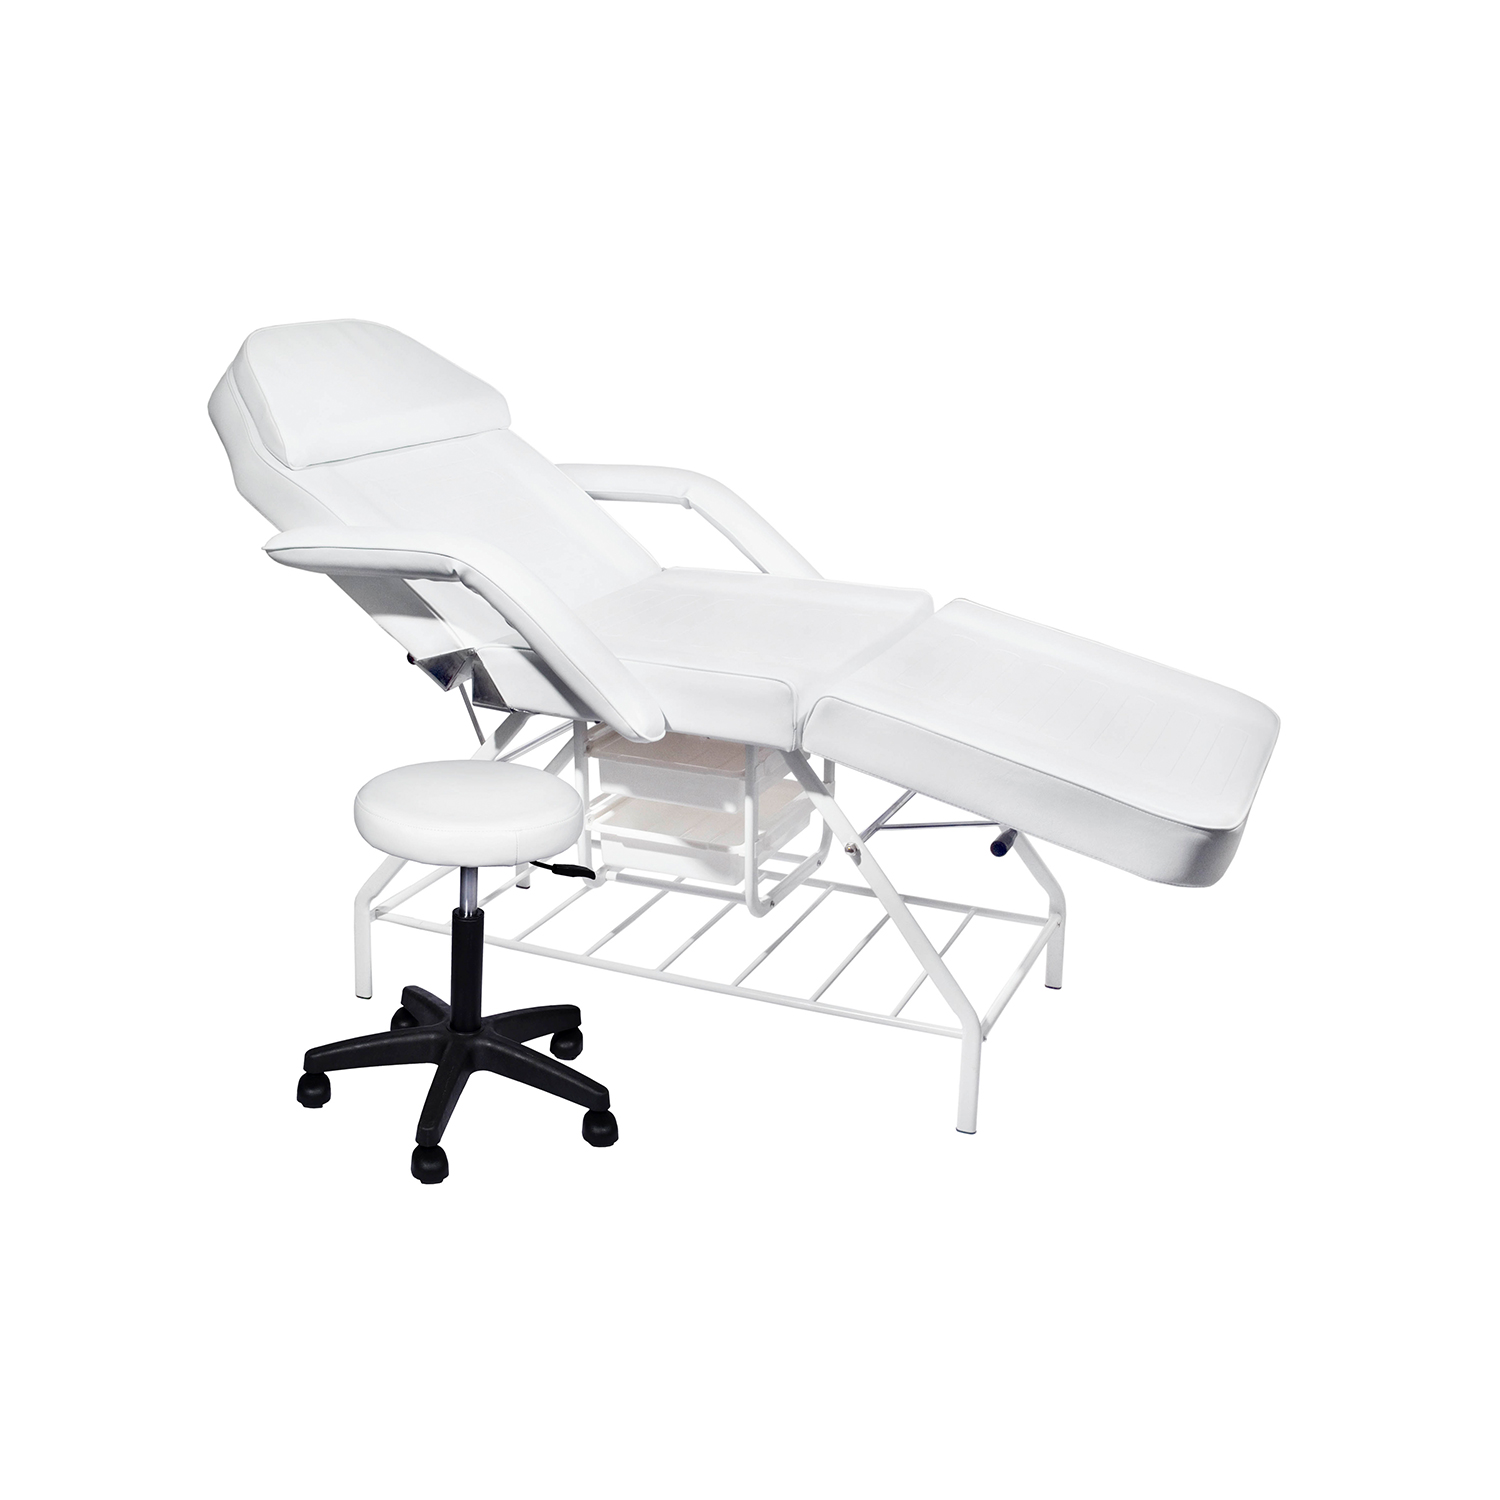 Premium Facial Bed with Trays & Stool - Combo  main product image